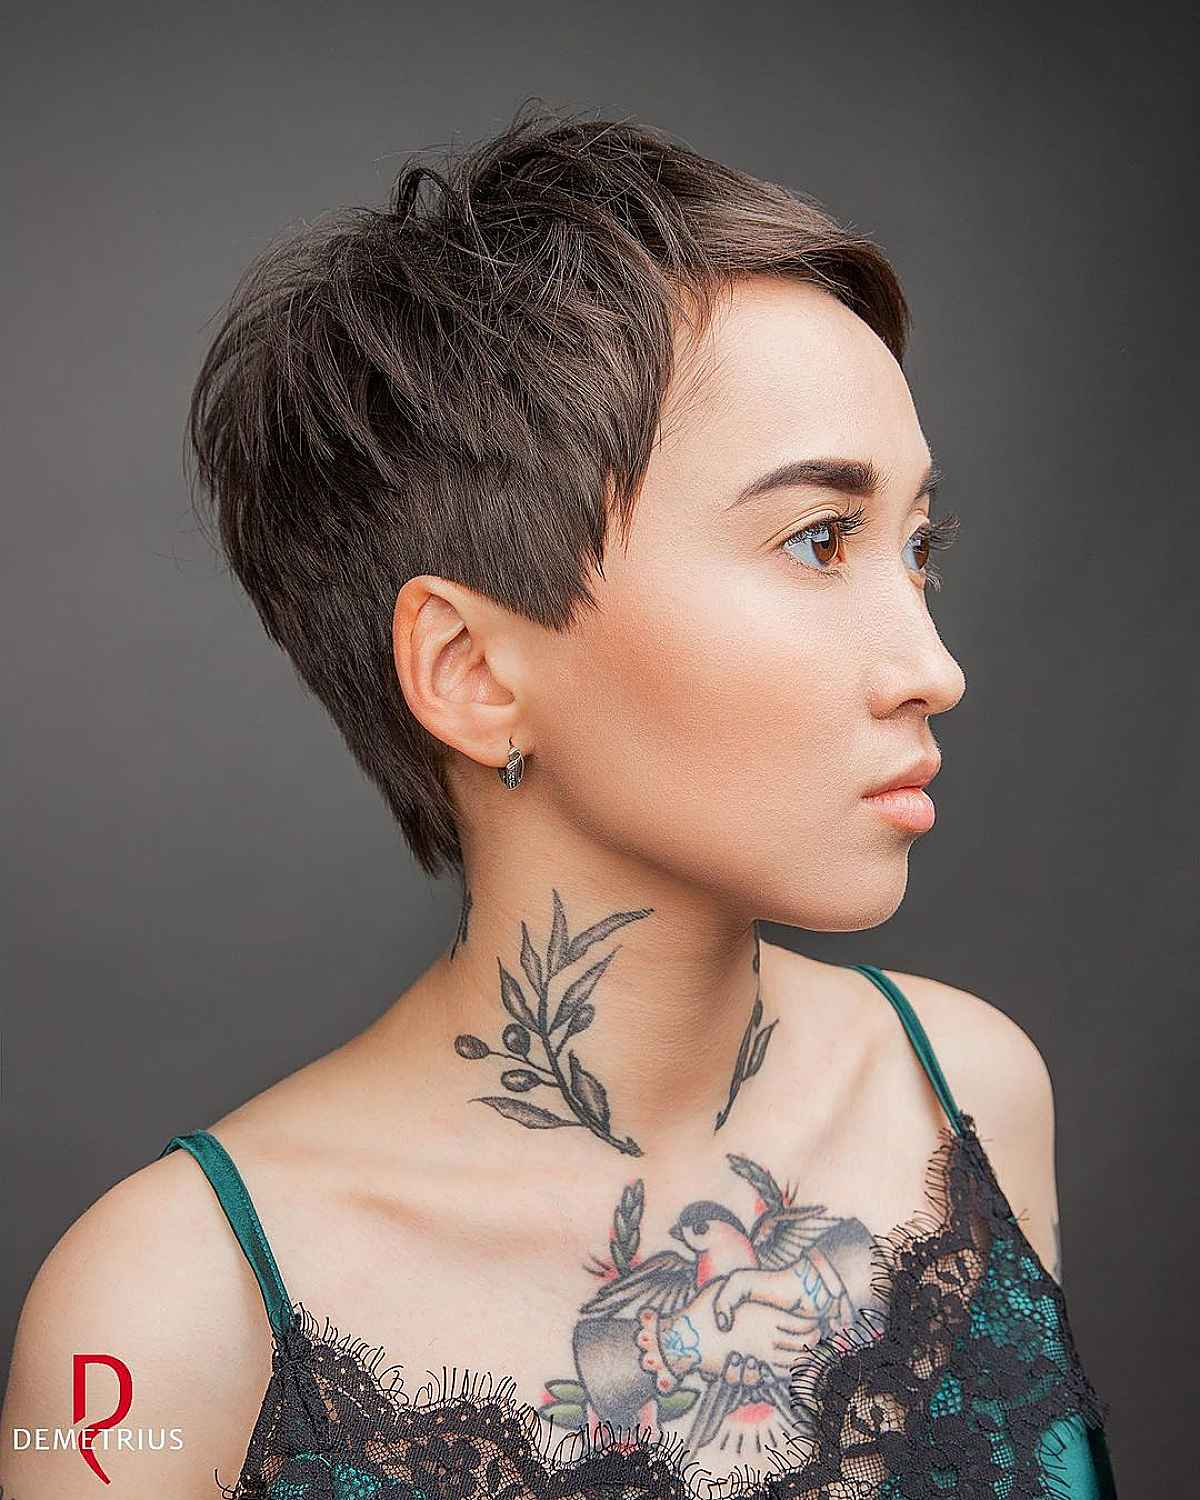 Flattering Pixie Cut for Thin-Haired Women